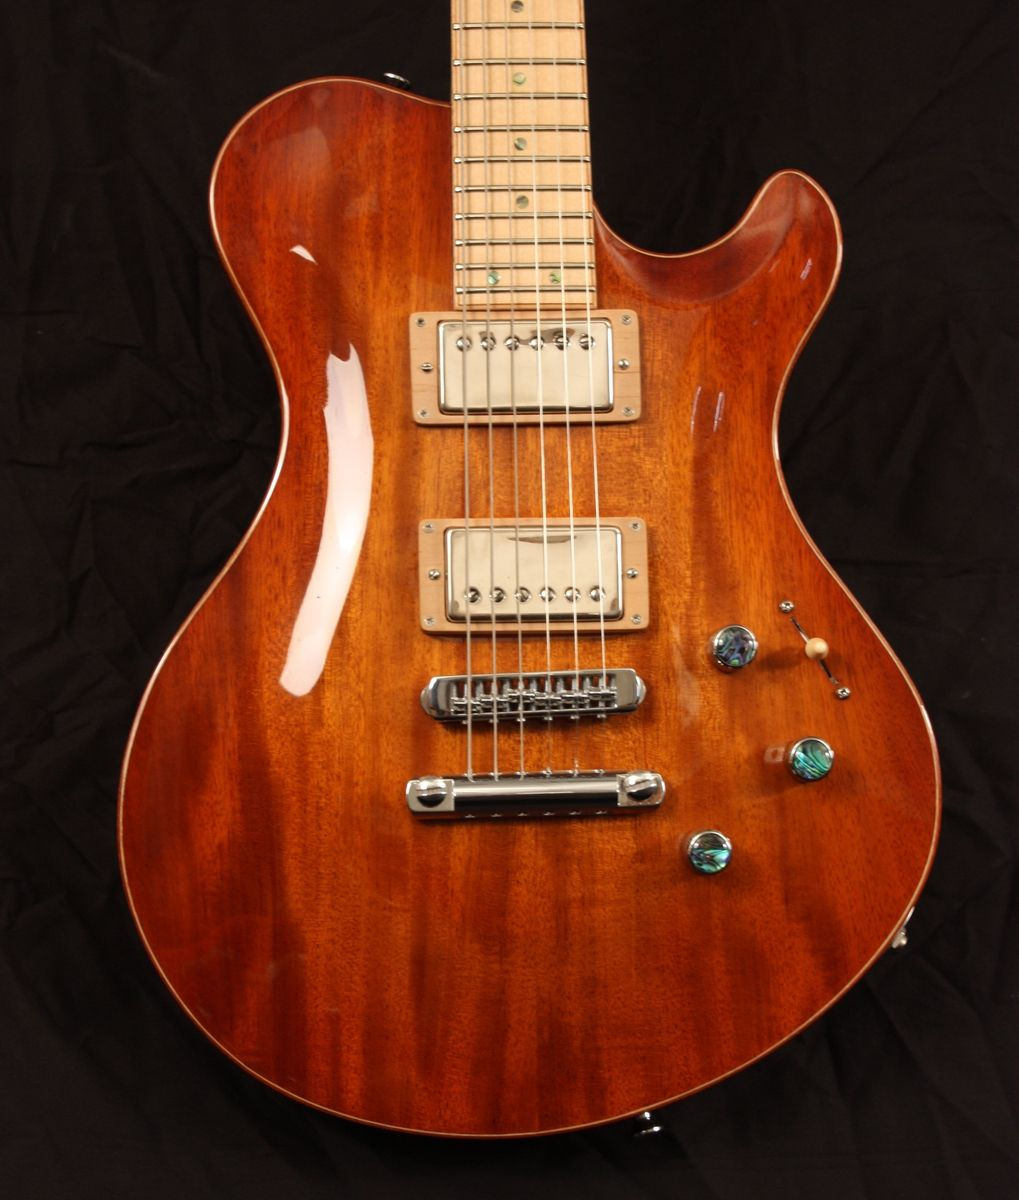 Handmade mahogany and maple carved top guitar by snider